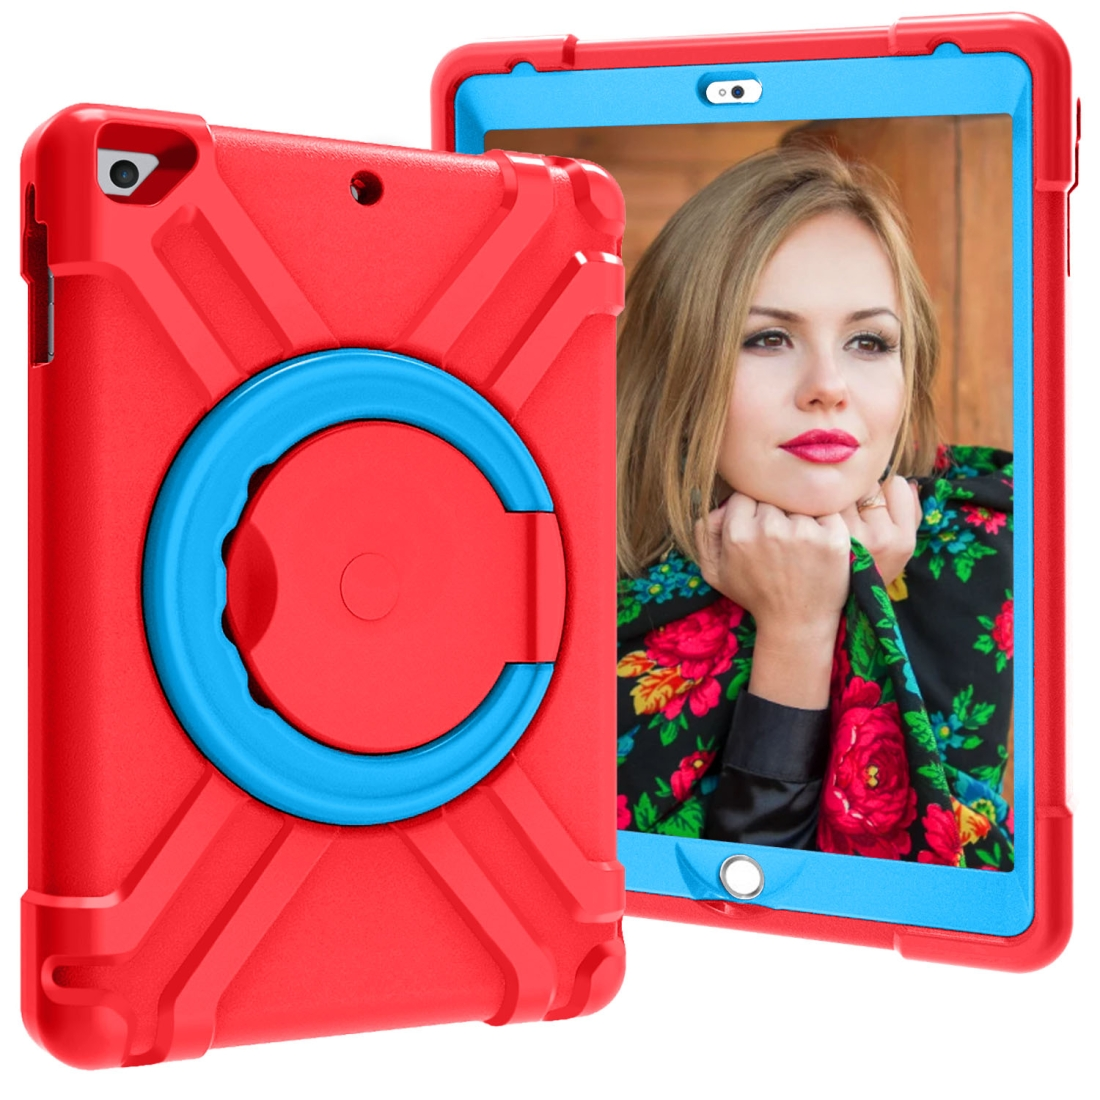 iPad Air Kids Case For iPad Air, Air 2 & iPad Pro 9.7, Durable Protective Case (Red/Blue)